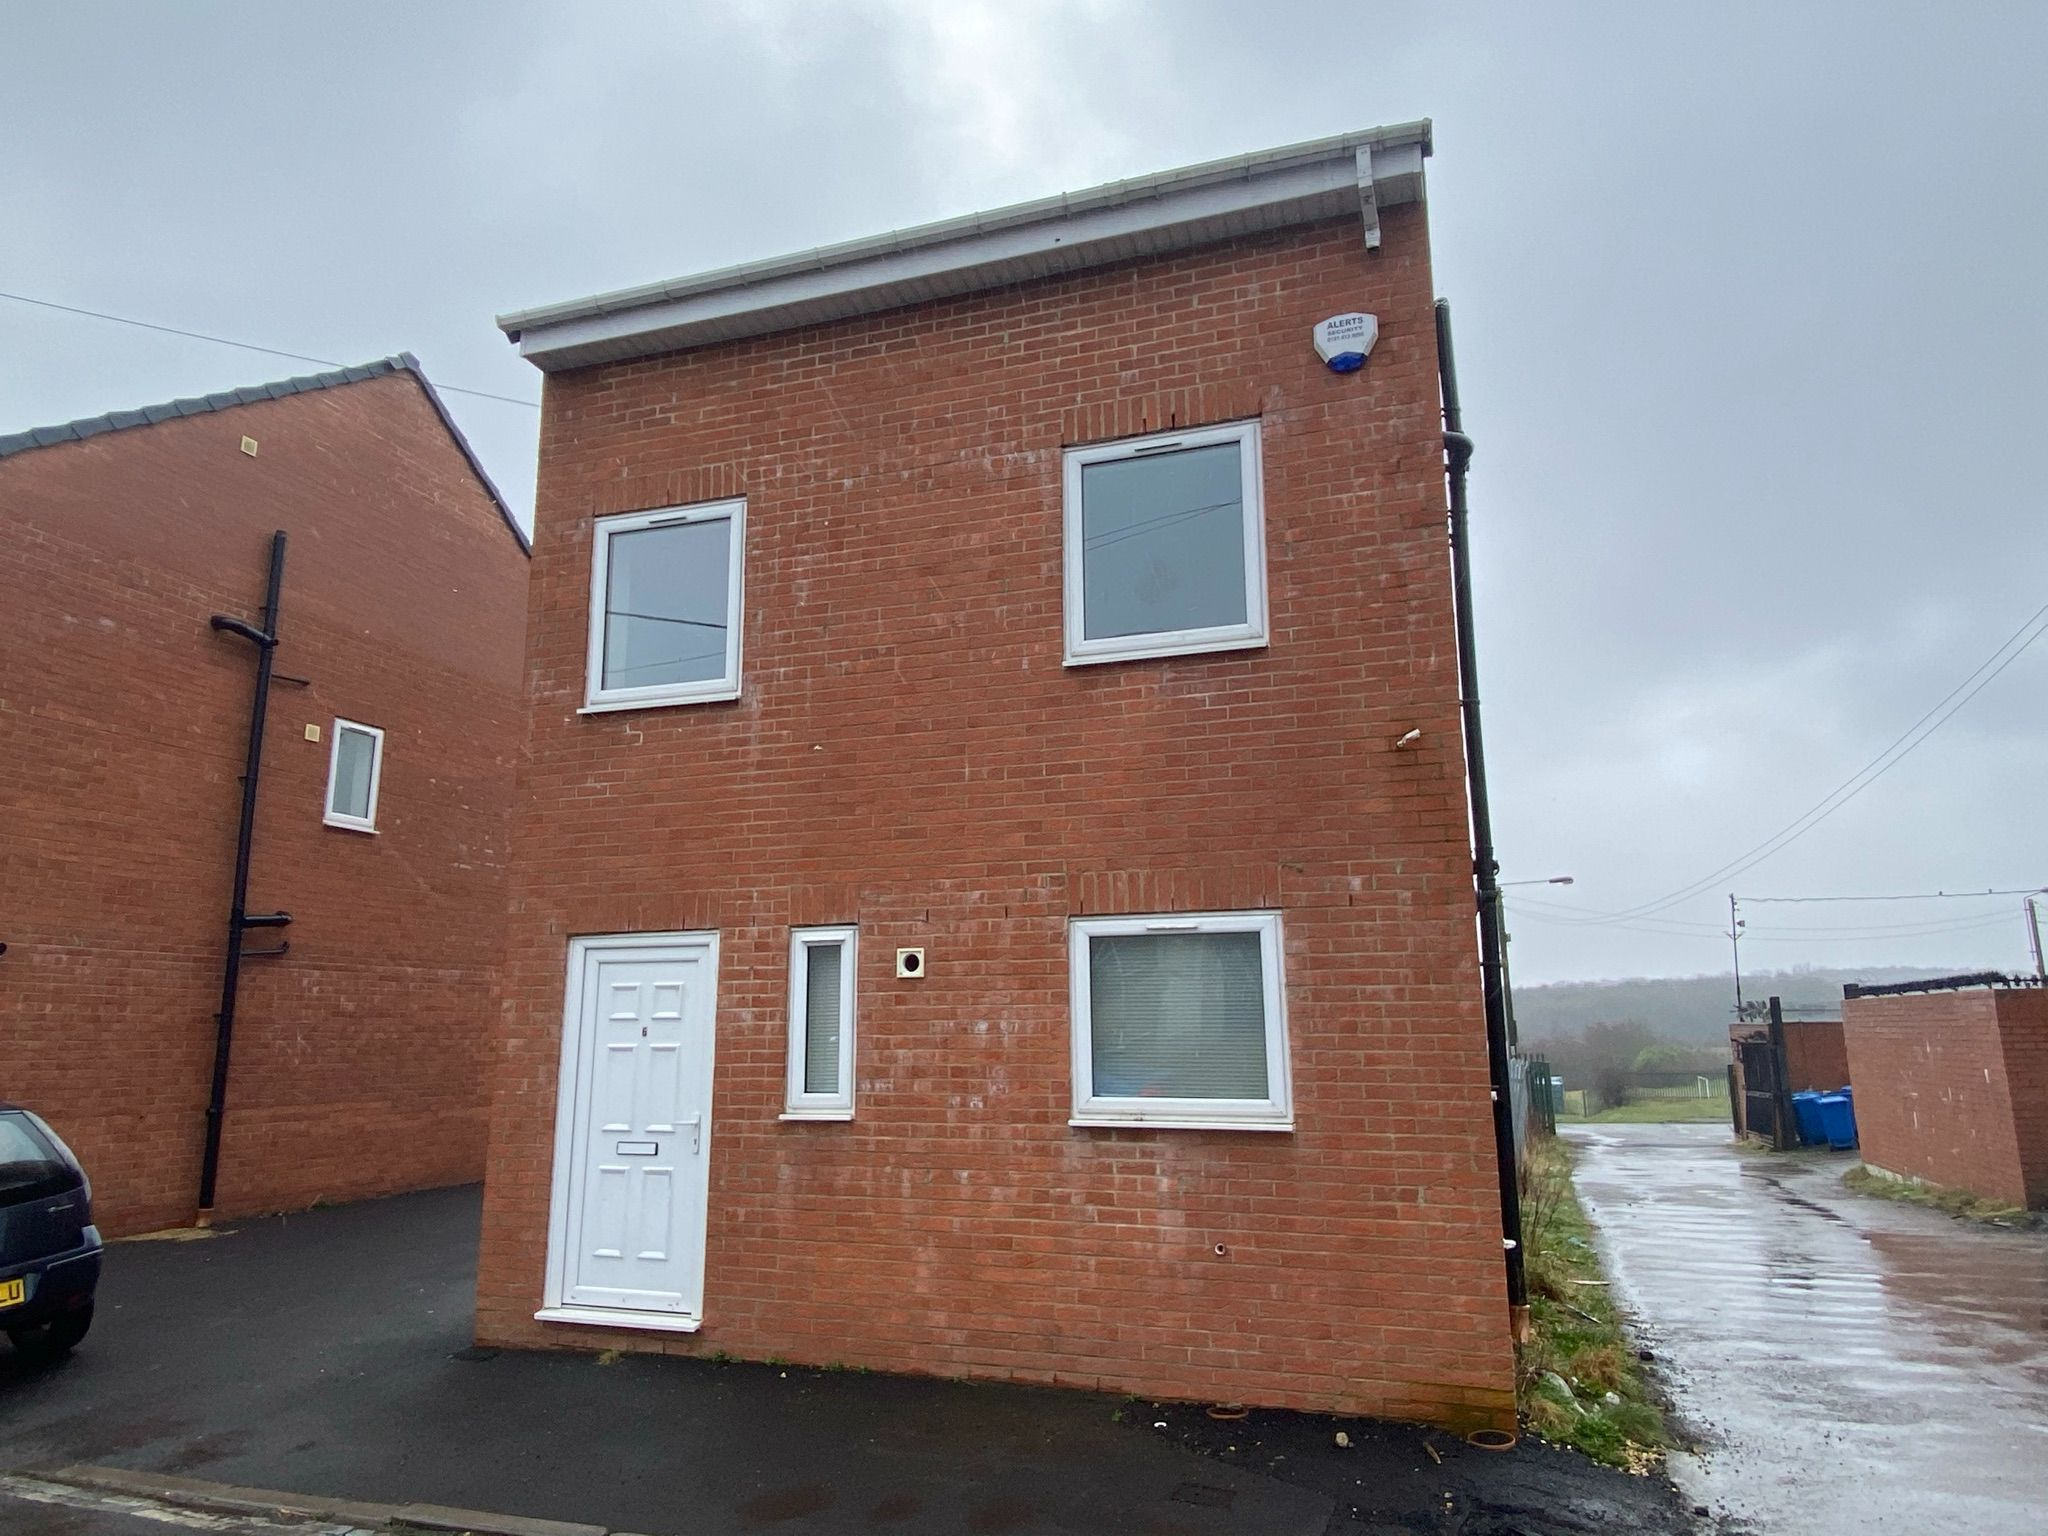 4 bedroom detached house For Sale in Durham - Photograph 2.